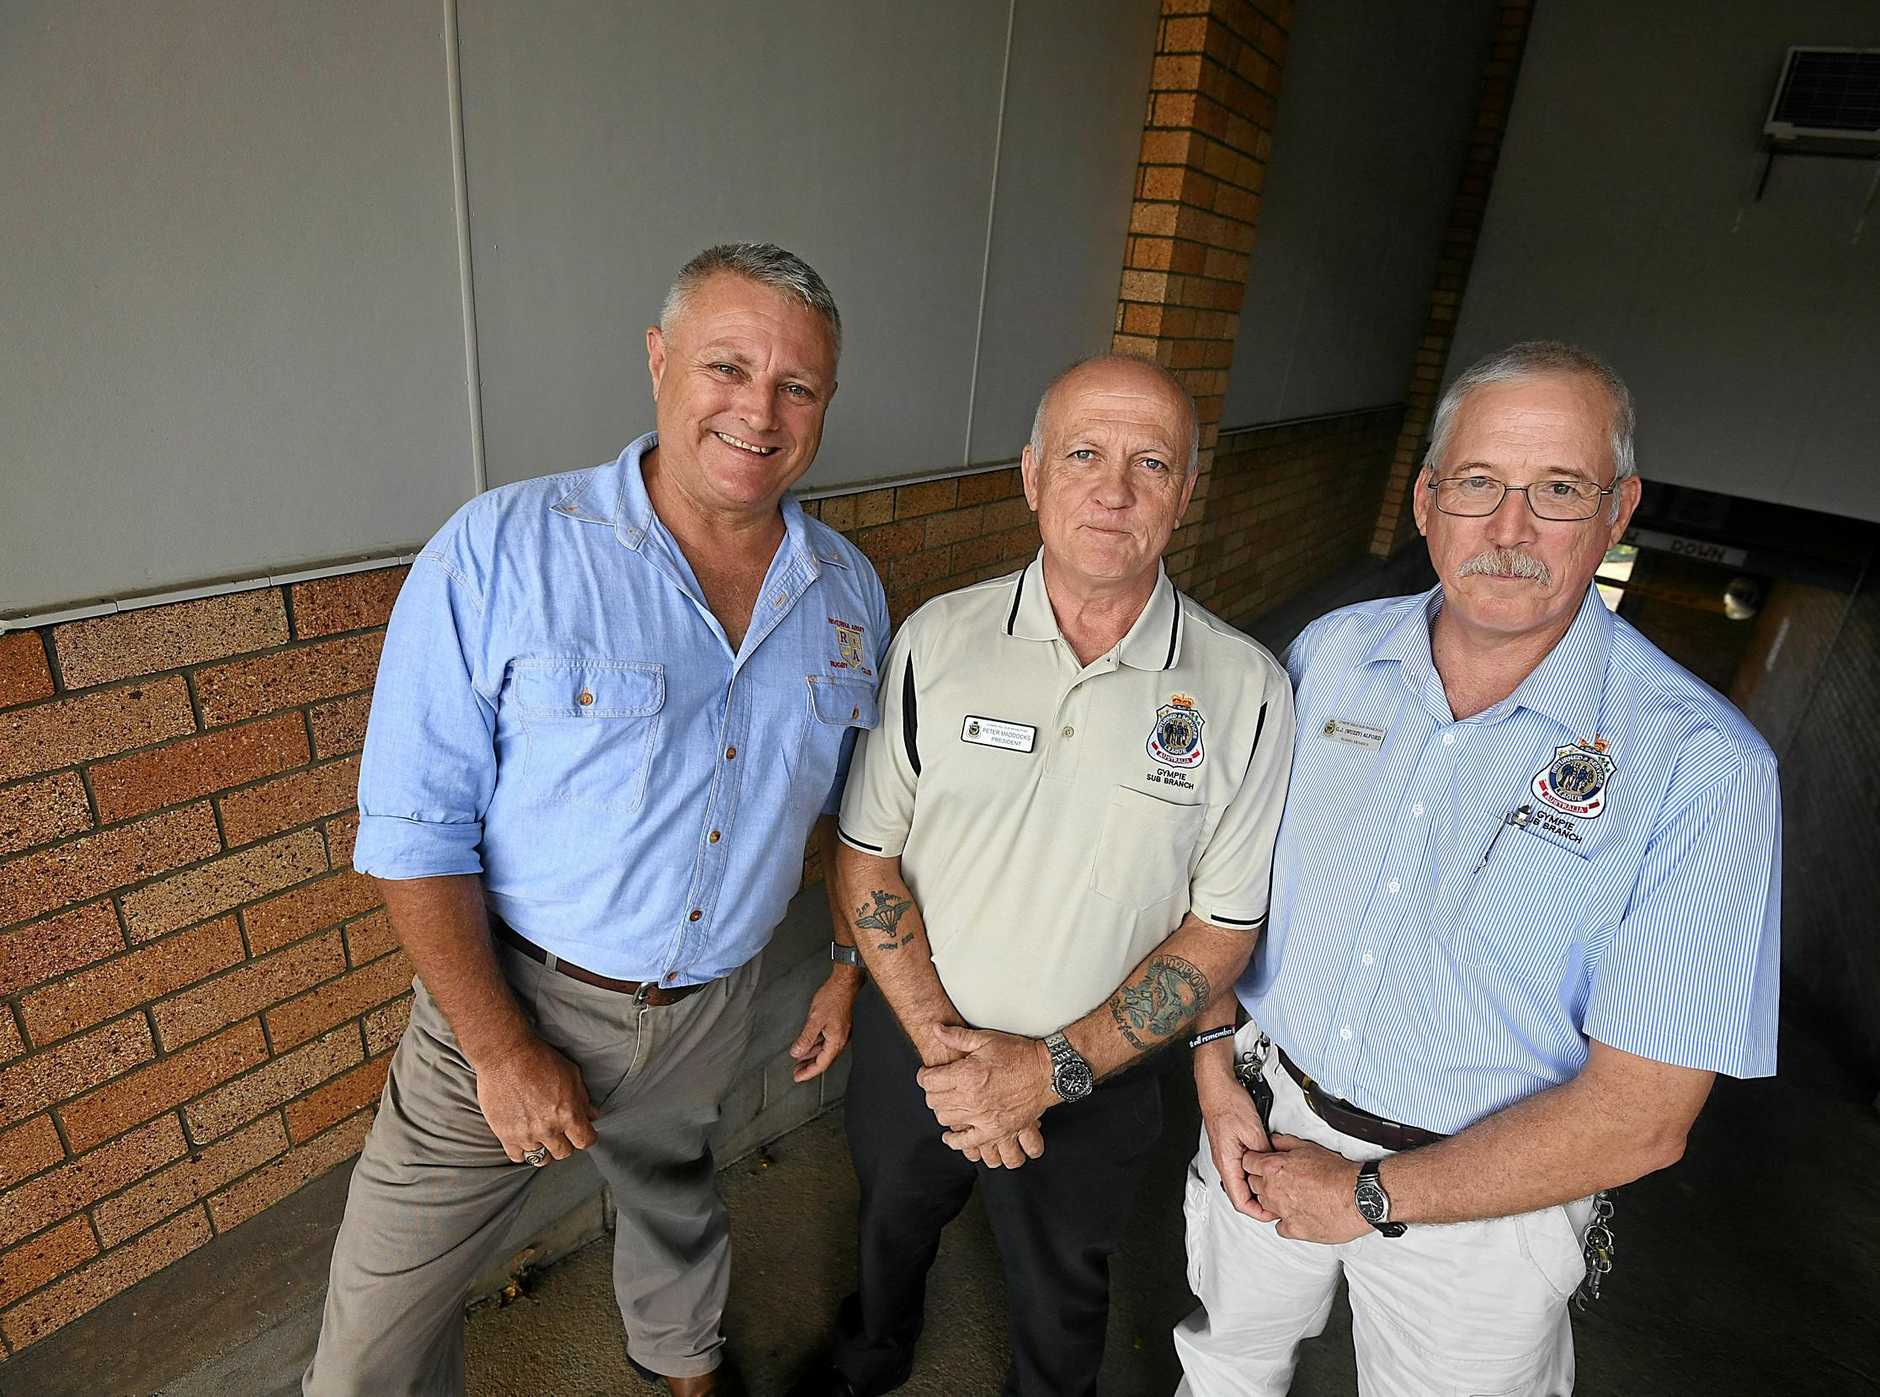 CADETS: Australian Army cadets are reforming in Gympie, say Col Morley, Peter Maddocks and Greg